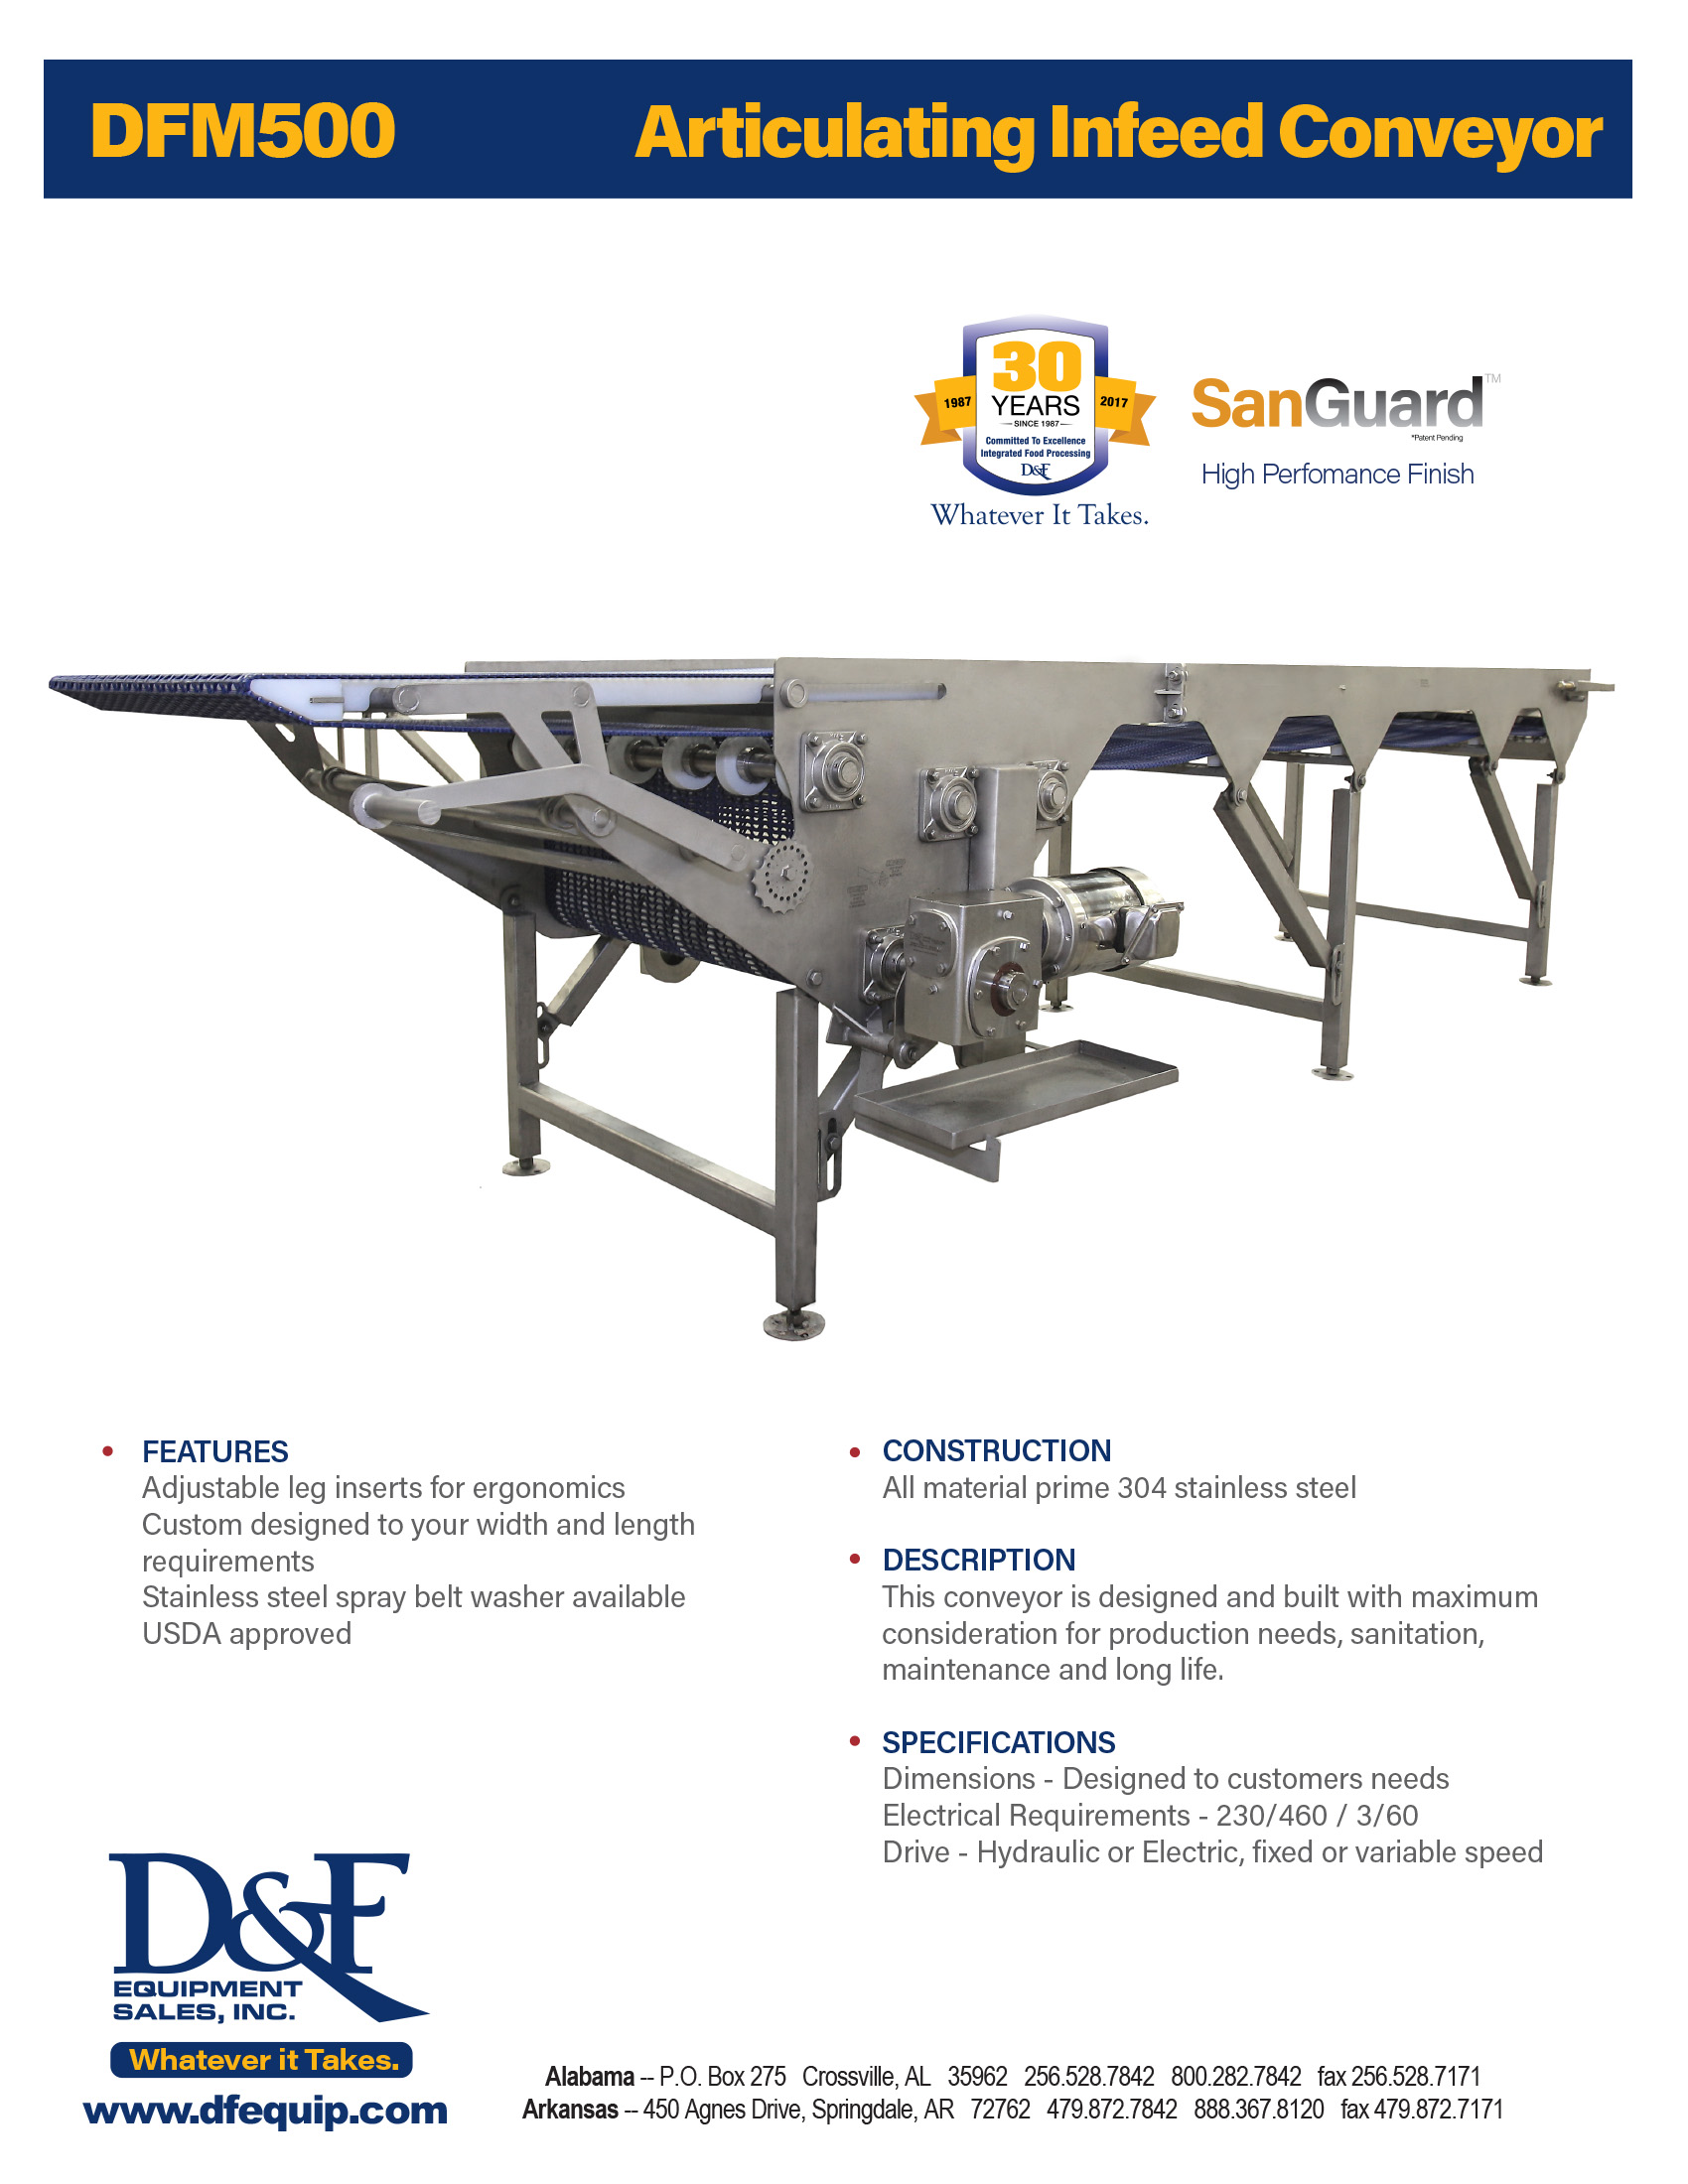 DFM500-ArticulatingInfeedConveyor2017.jpg